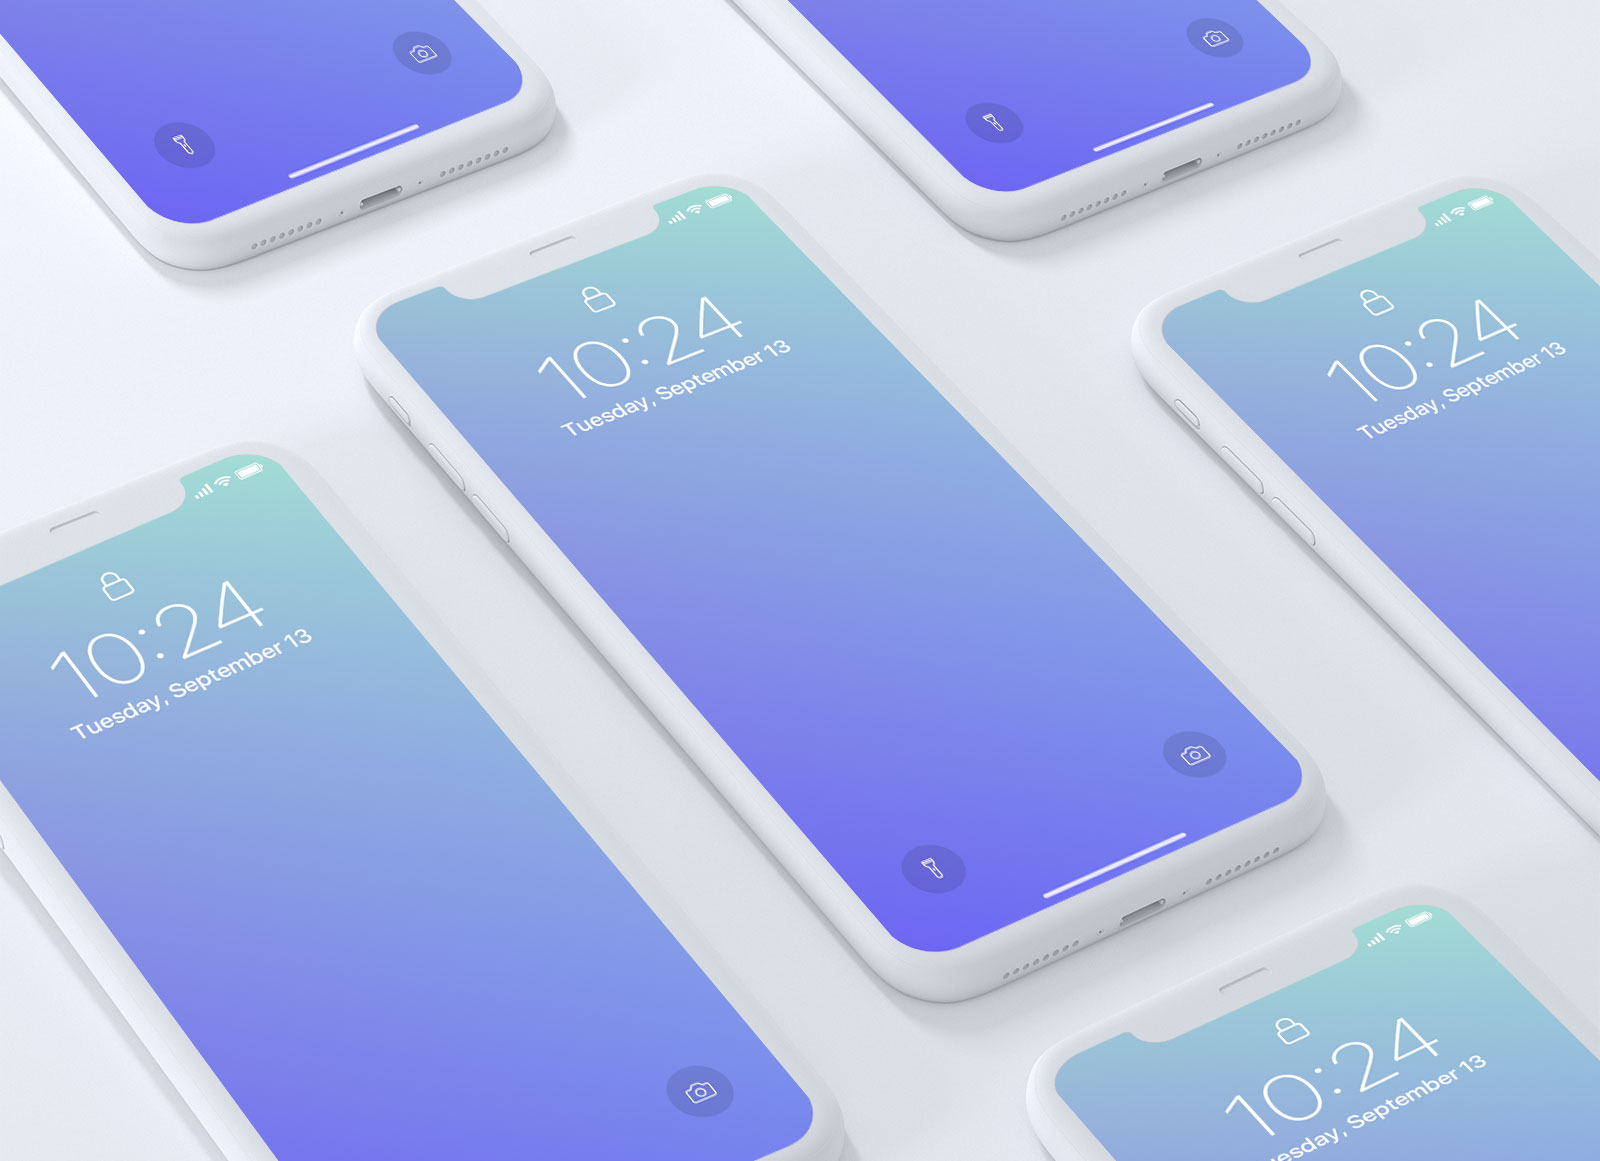 Free-Premium-iPhone-X-App-Screen-Mockup-PSD